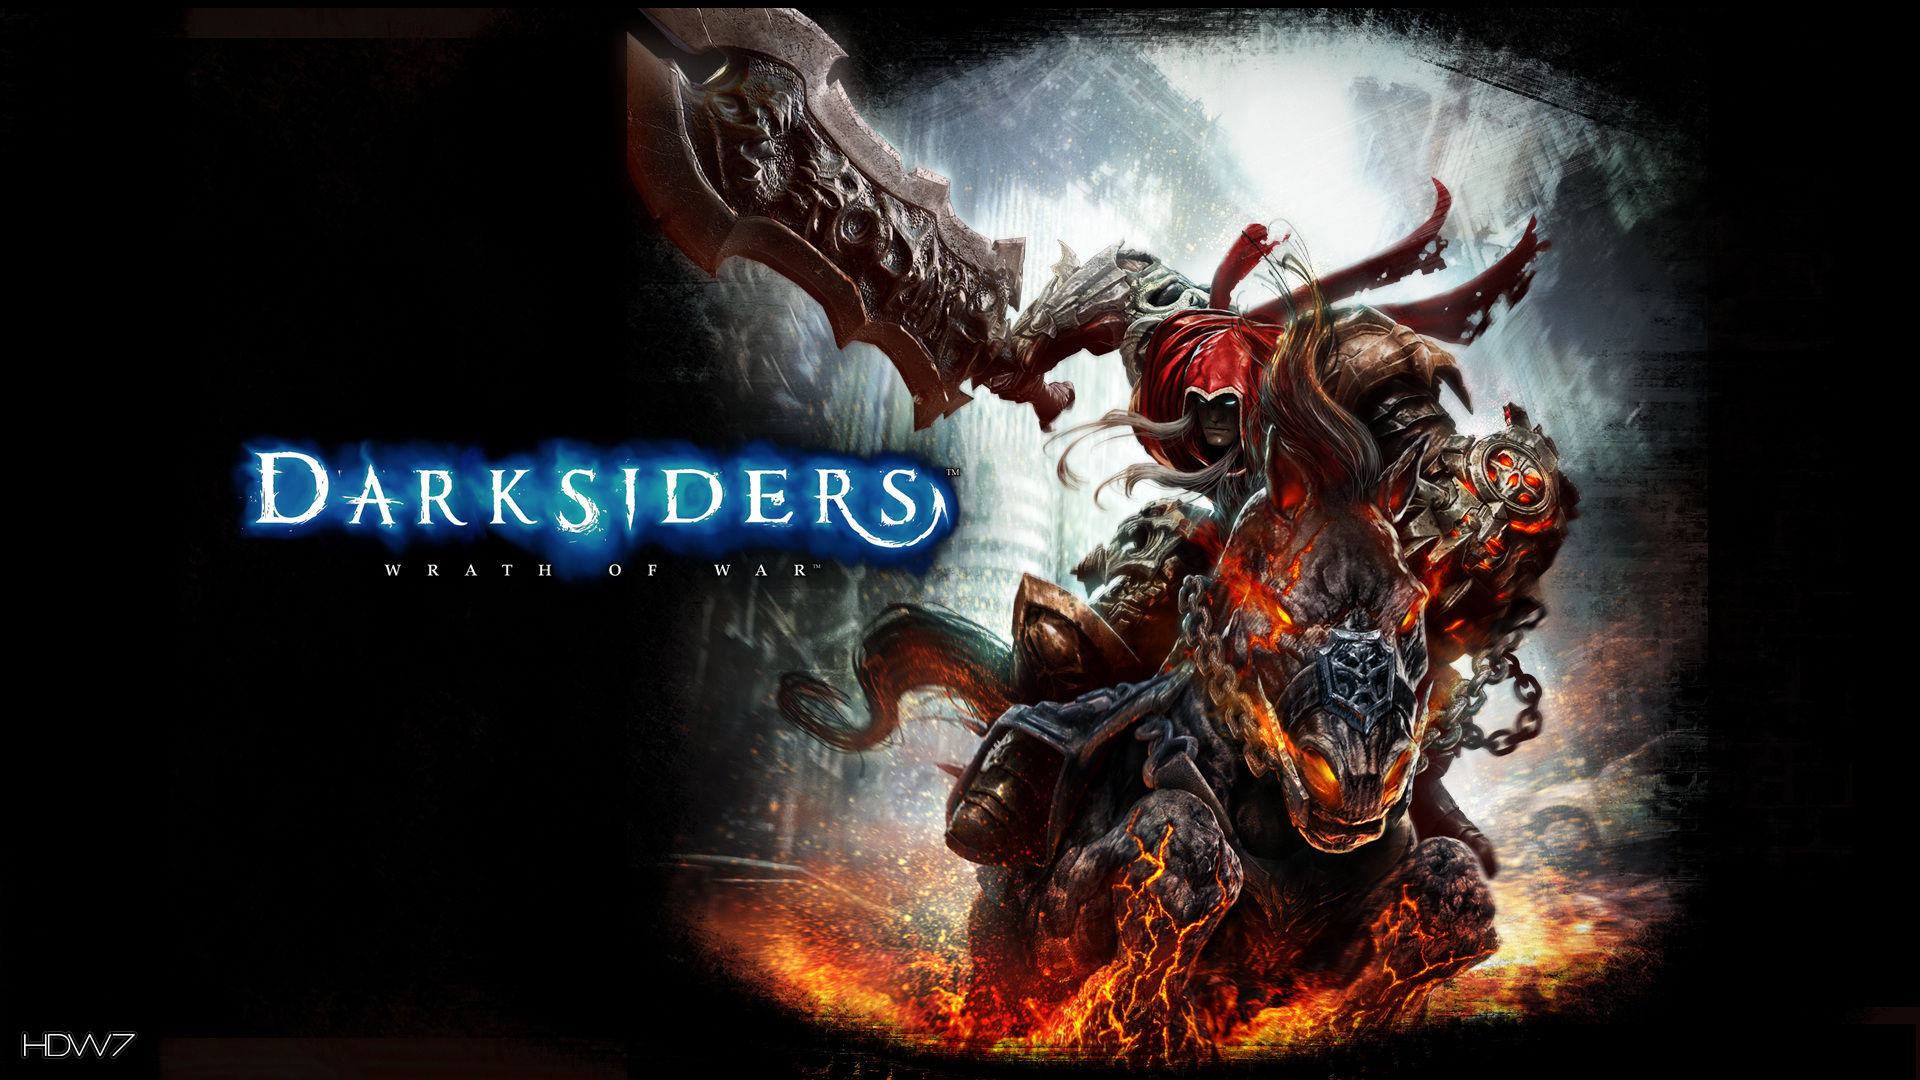 darksiders wrath of war forces of heaven and hell widescreen hd wallpaper